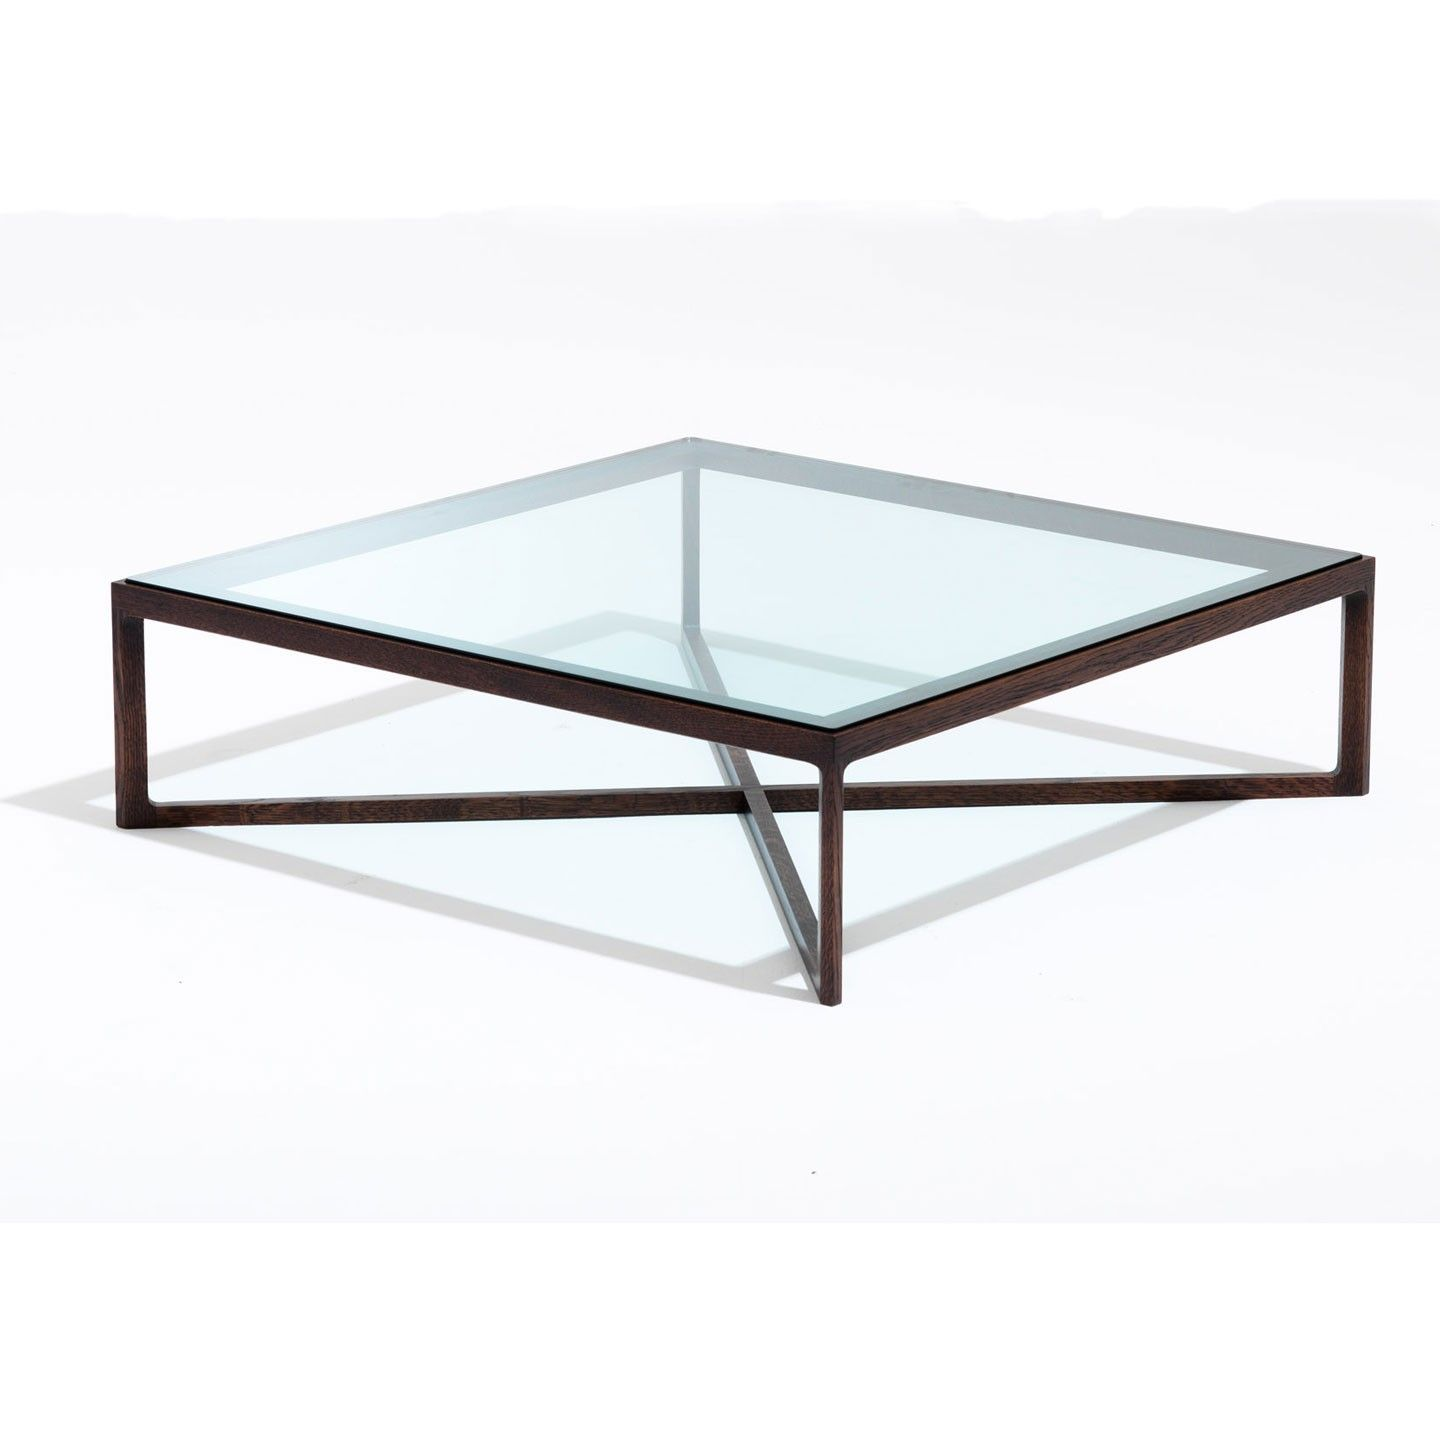 Tall Glass Coffee Tables Doces Abobrinhas Pinterest